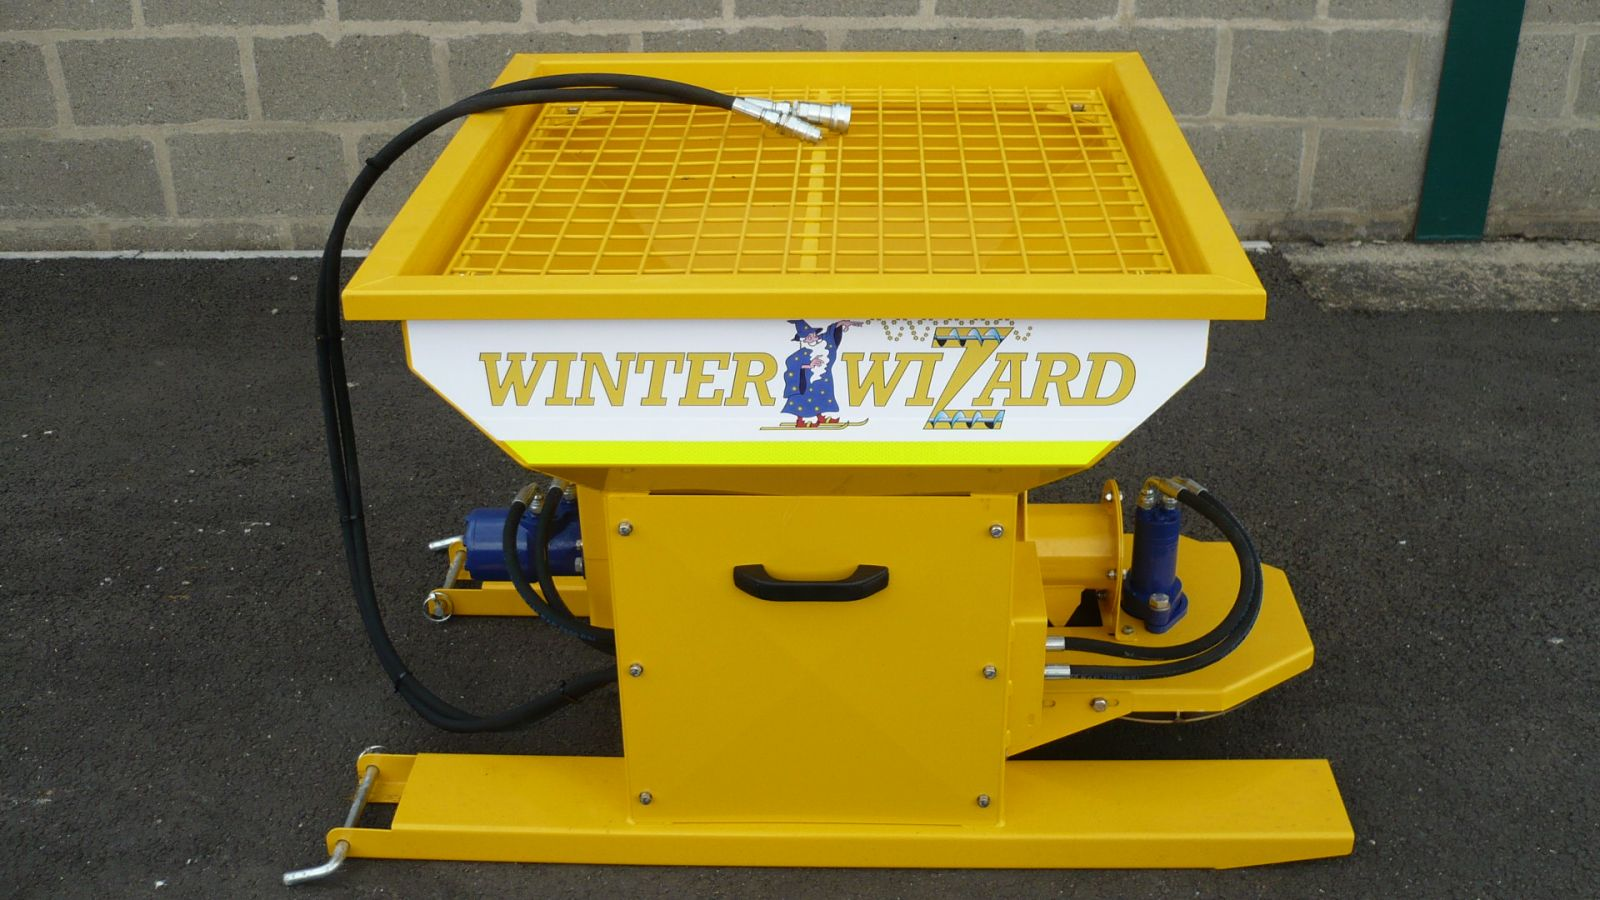 The Winter Wizard has a flat mesh top with access hatch